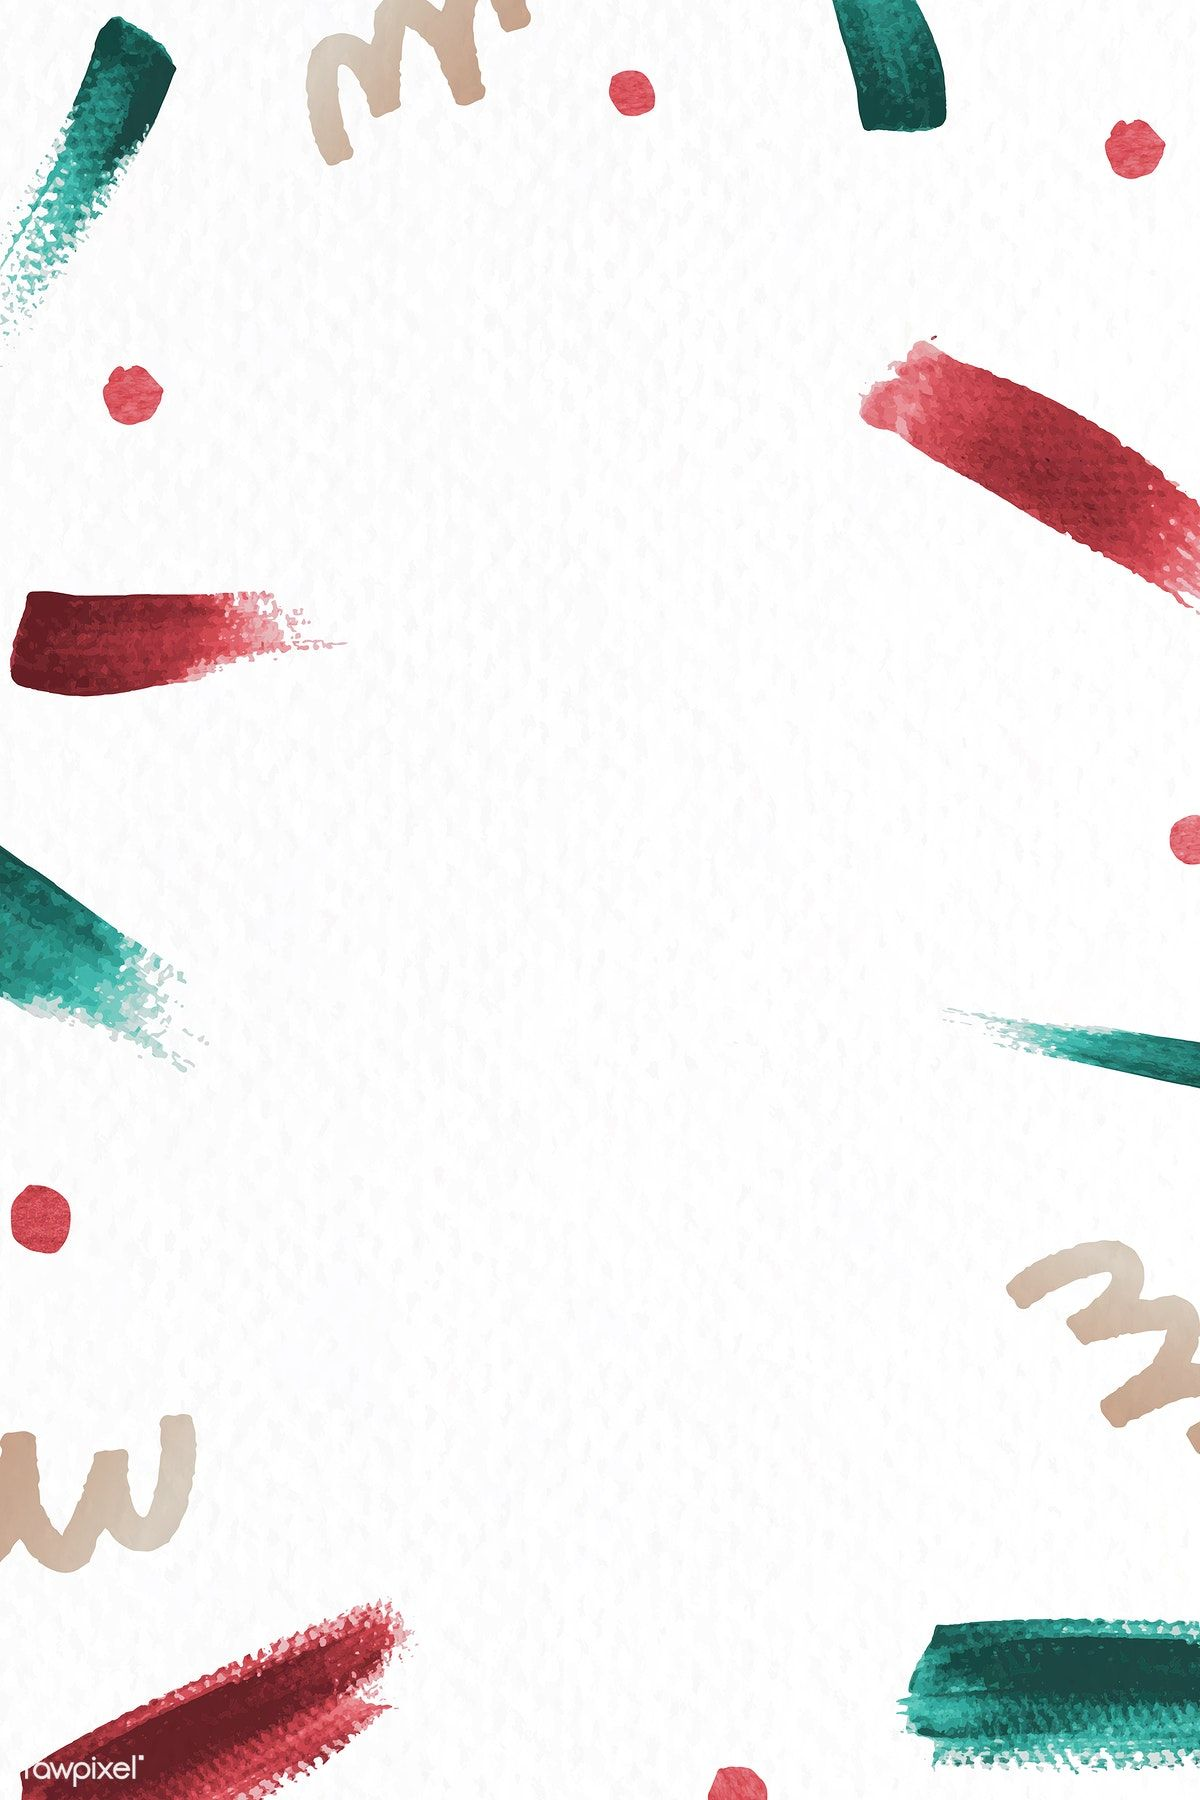 Download premium vector of Red and green brush stroke Christmas background #christmasbackgrounds